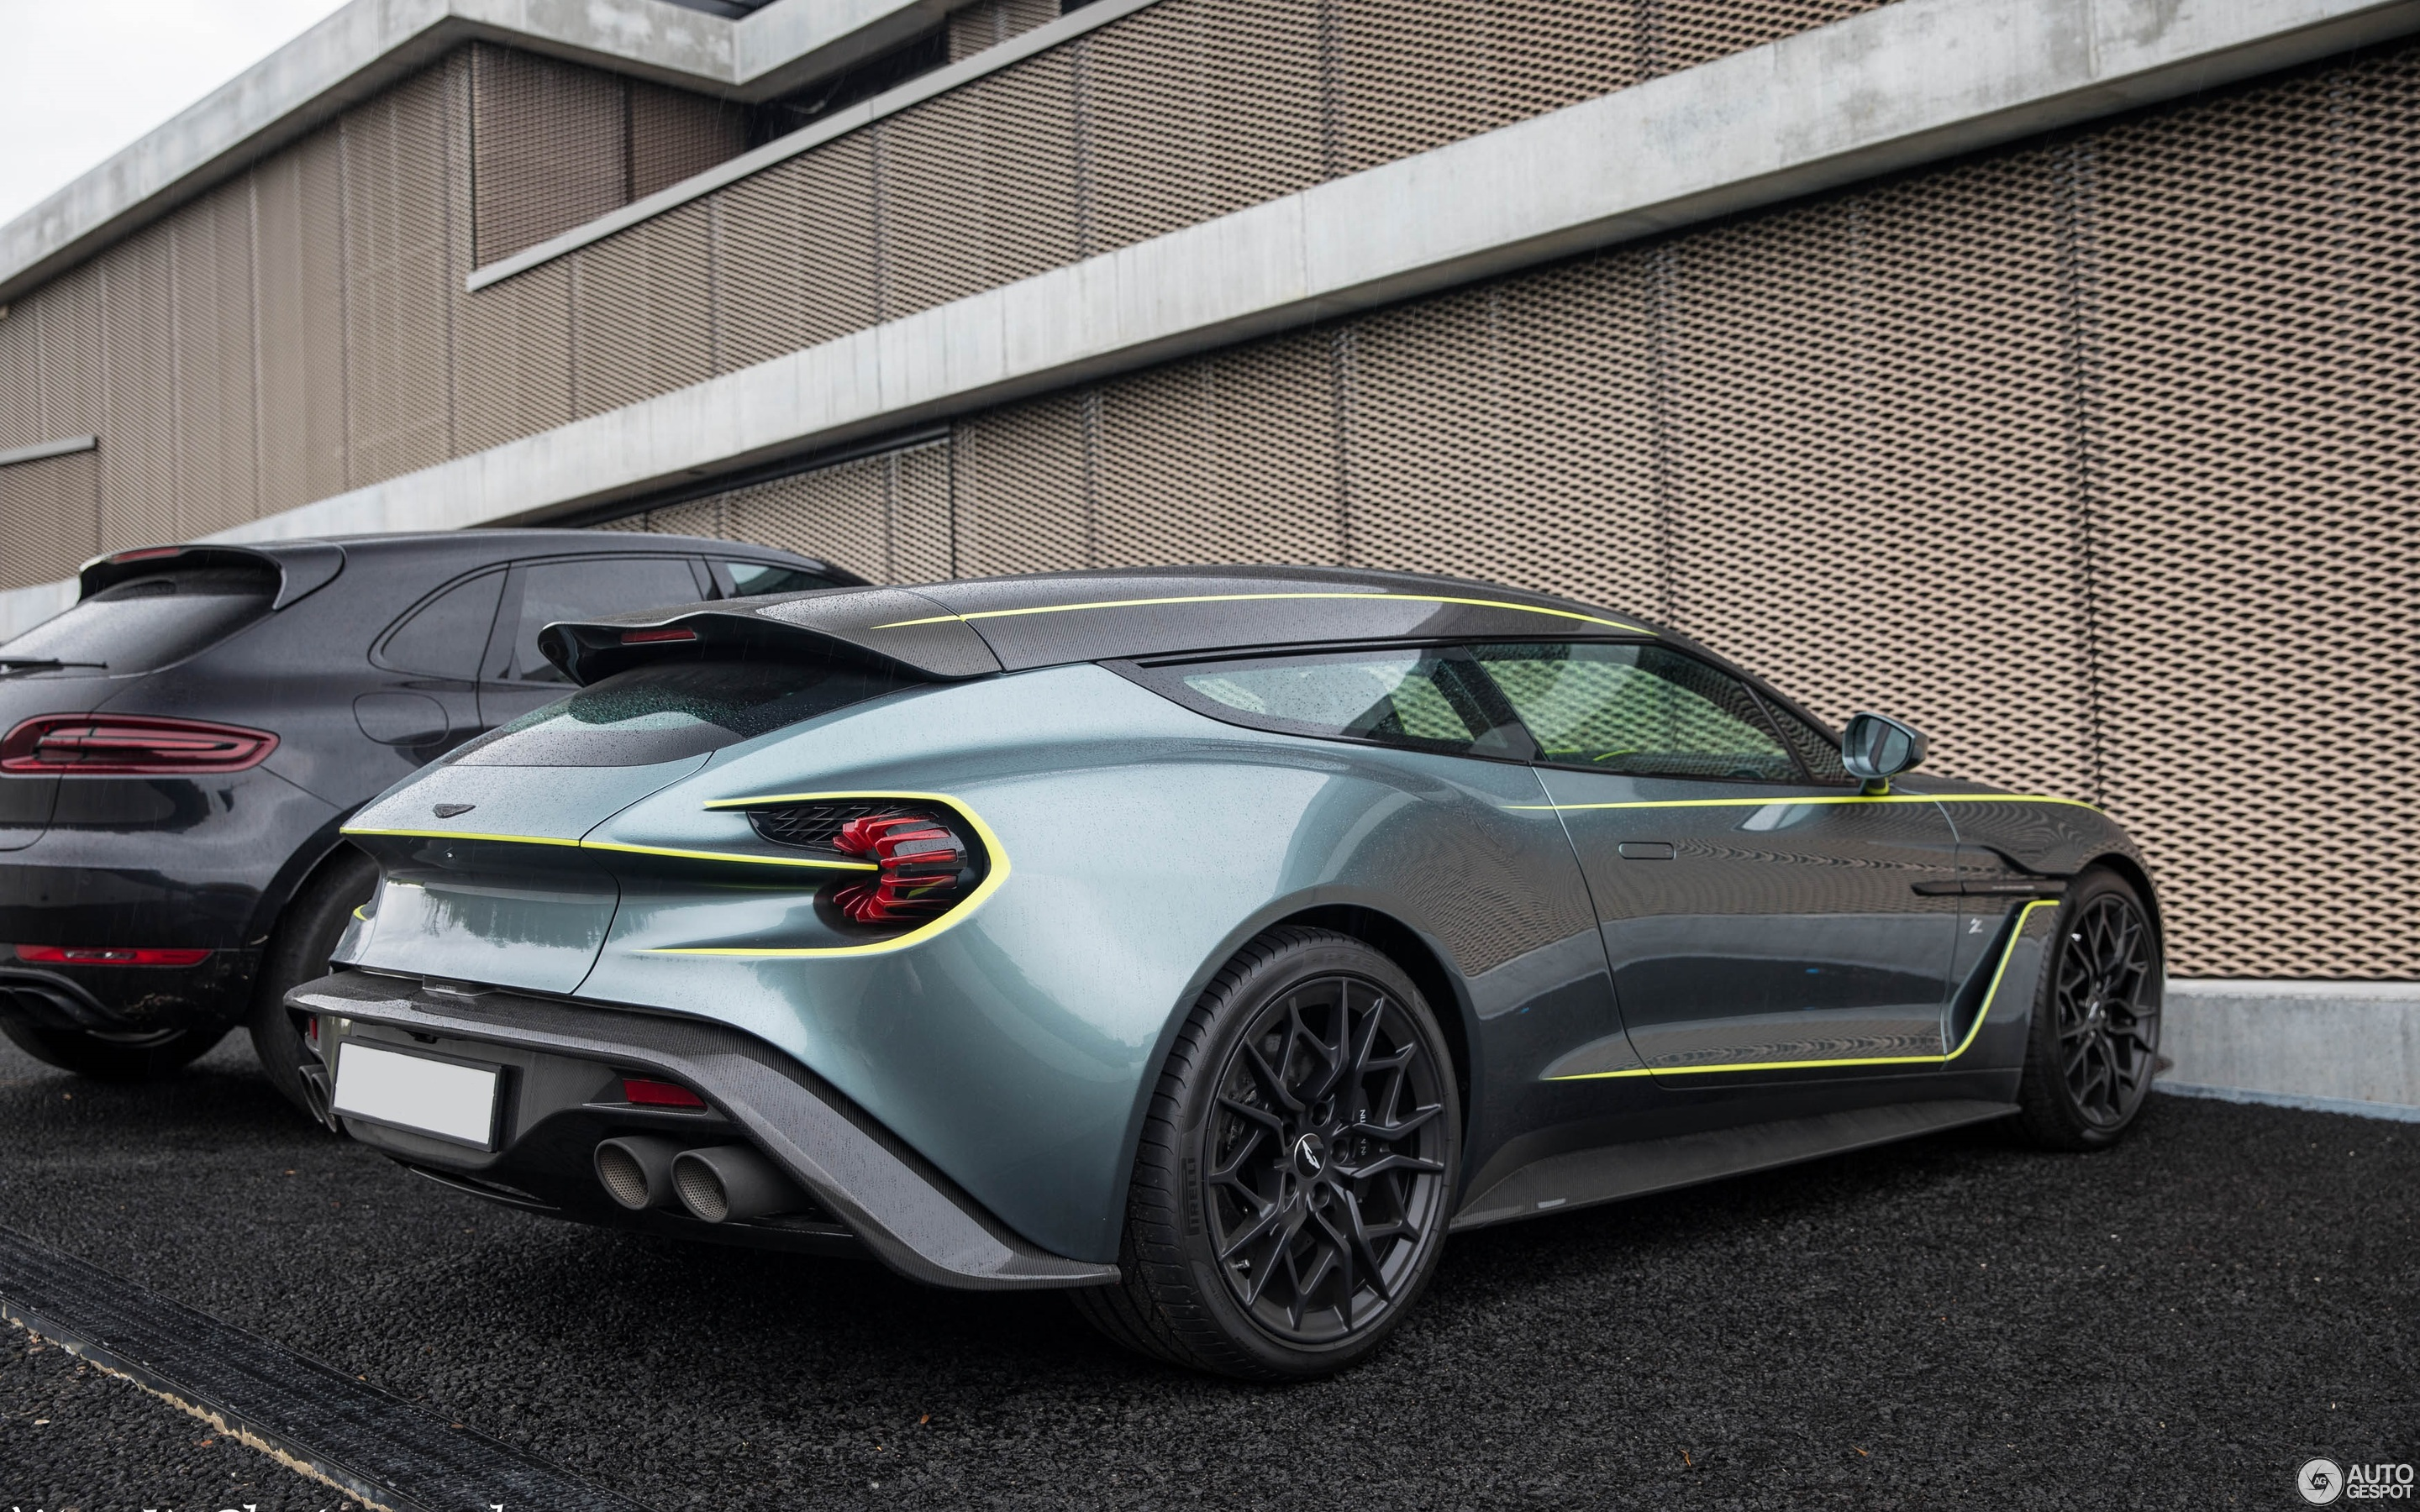 Aston Martin Vanquish Zagato Shooting Brake 13 June 2019 Autogespot